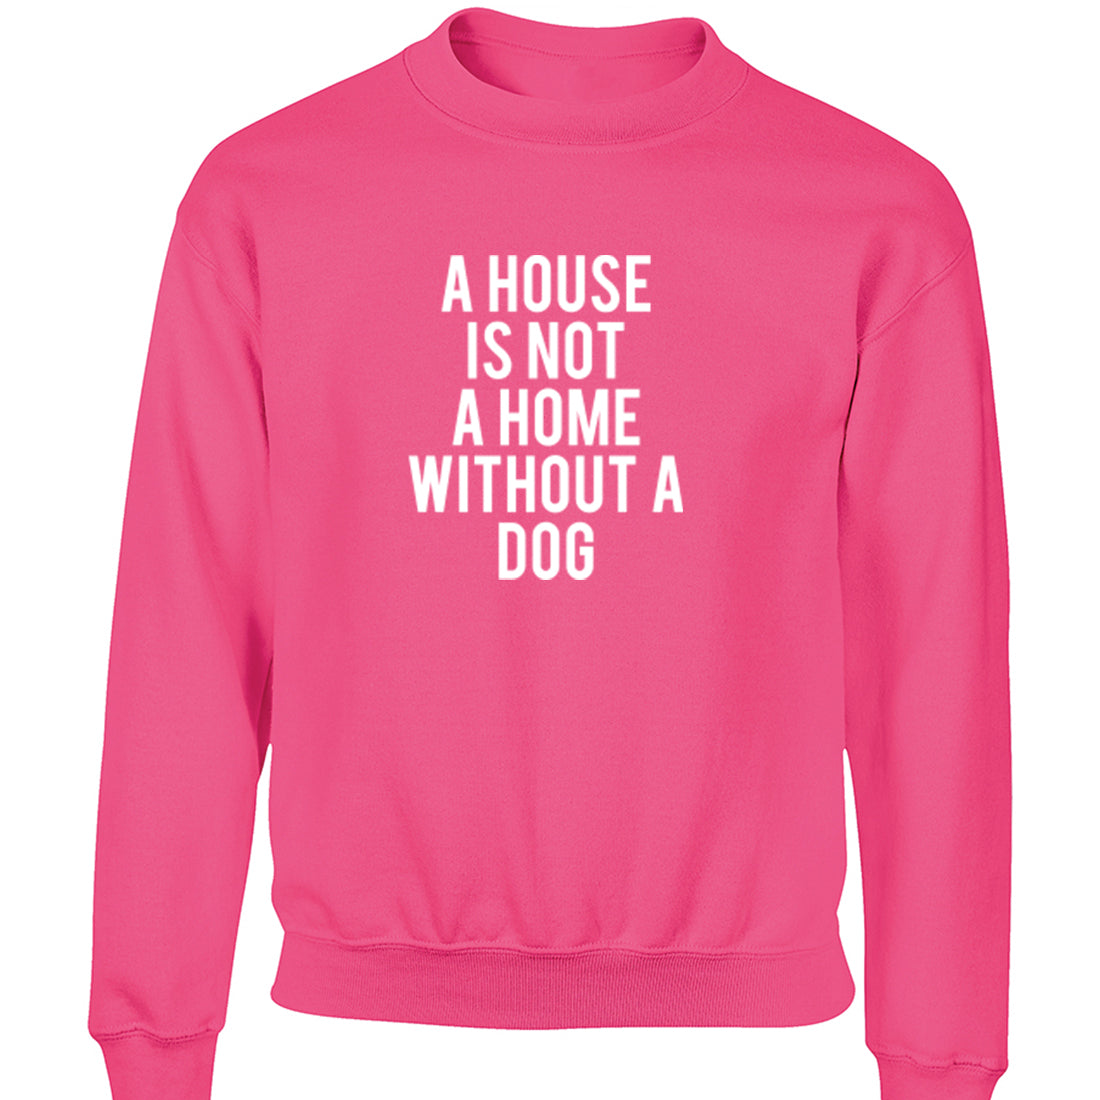 A House Is Not A Home Without A Dog Childrens Ages 3/4-12/14 Unisex Jumper K1847